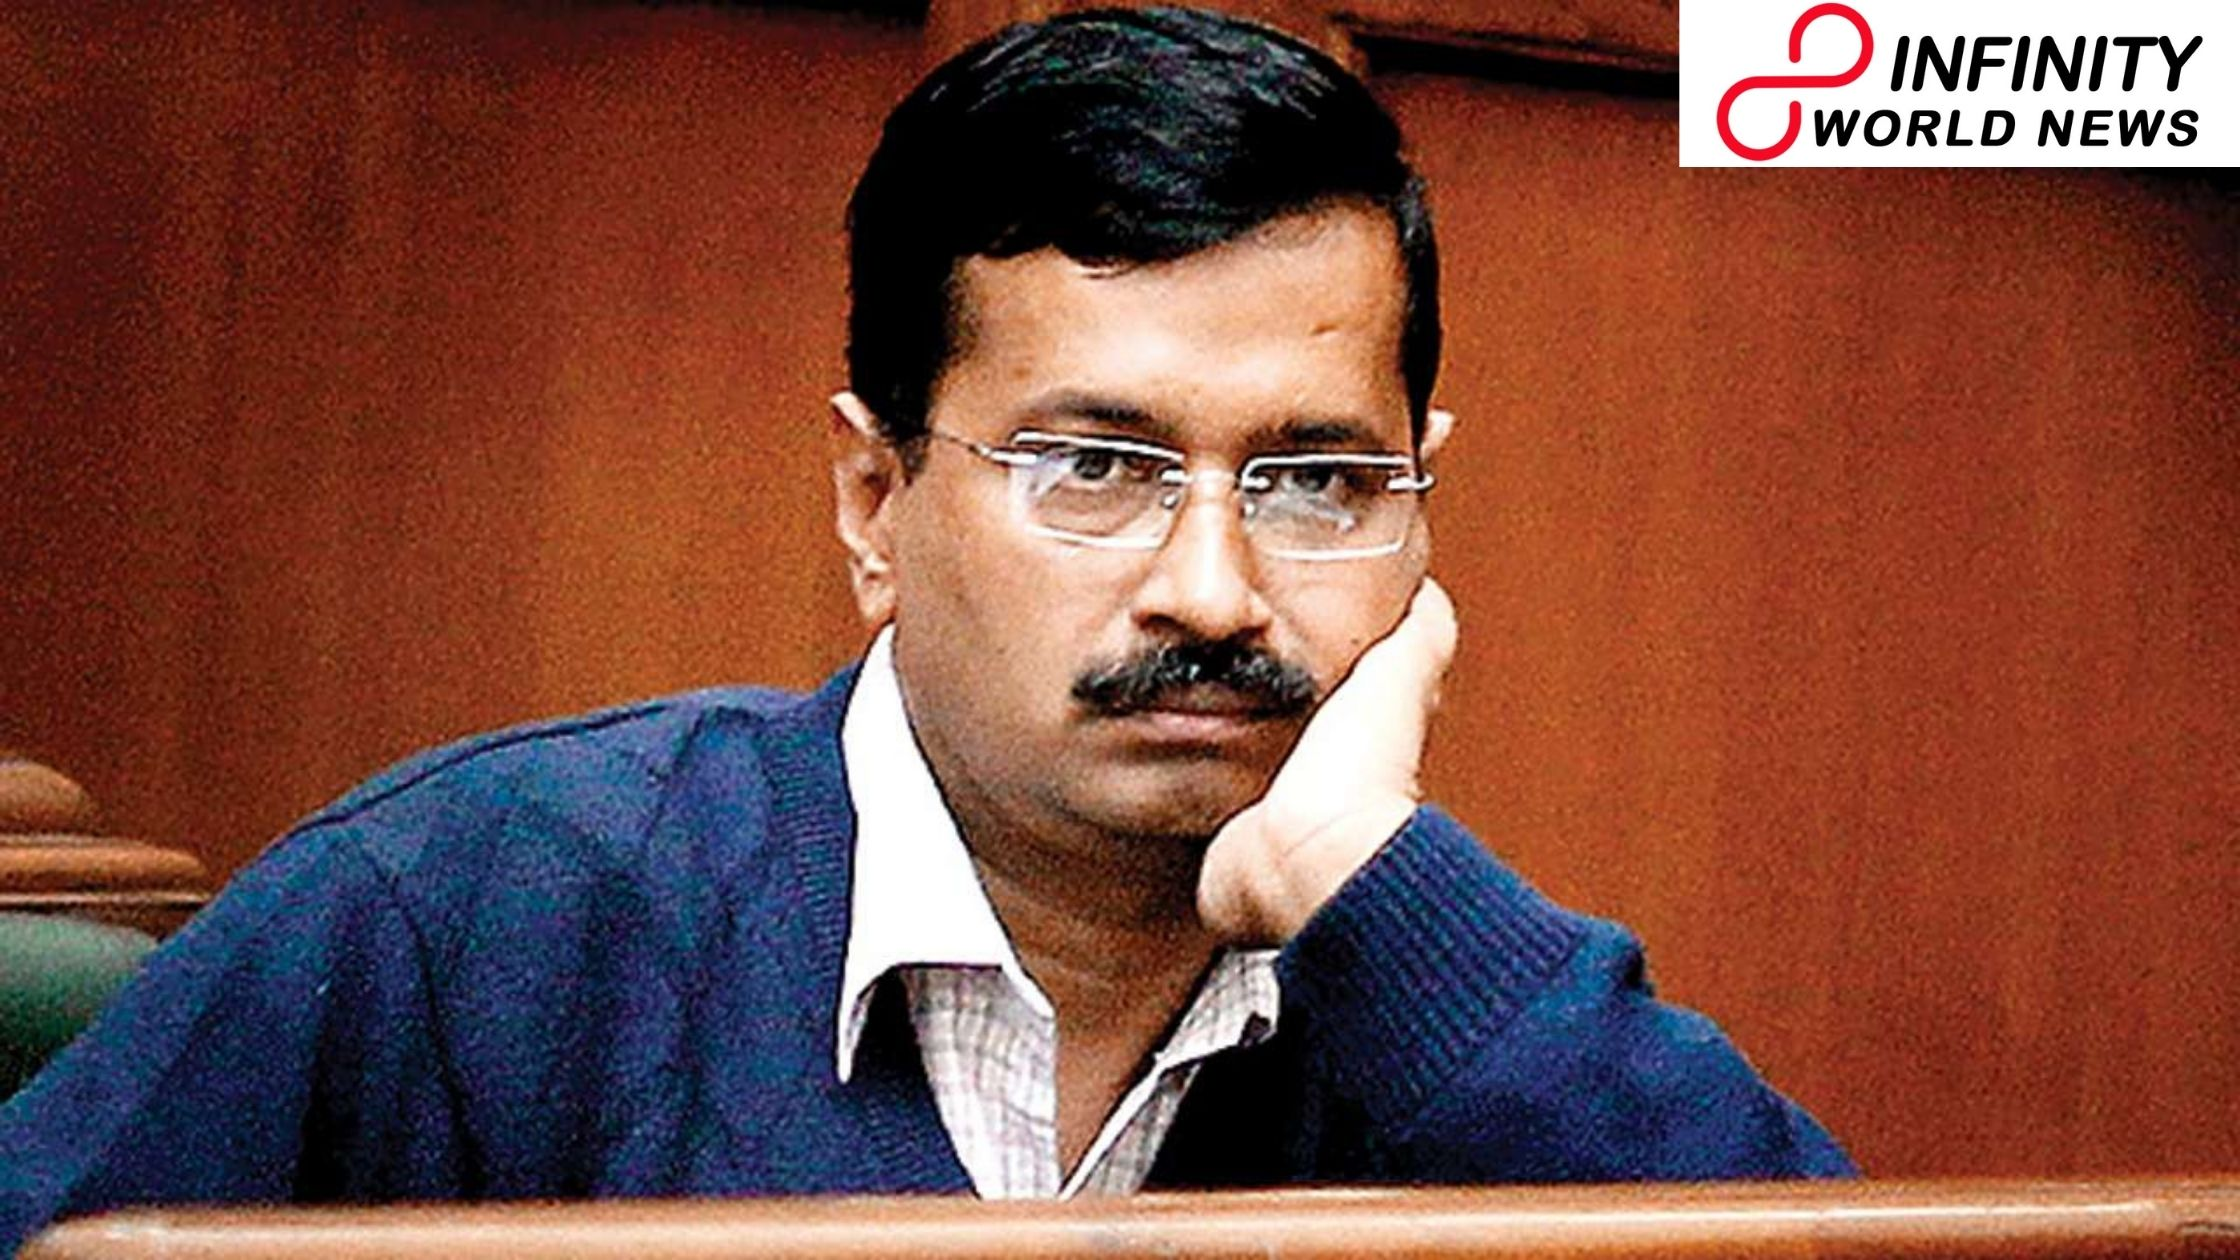 Kejriwal blames Amarinder Singh for 'low-level' legislative issues, says he is feeling the squeeze from ED